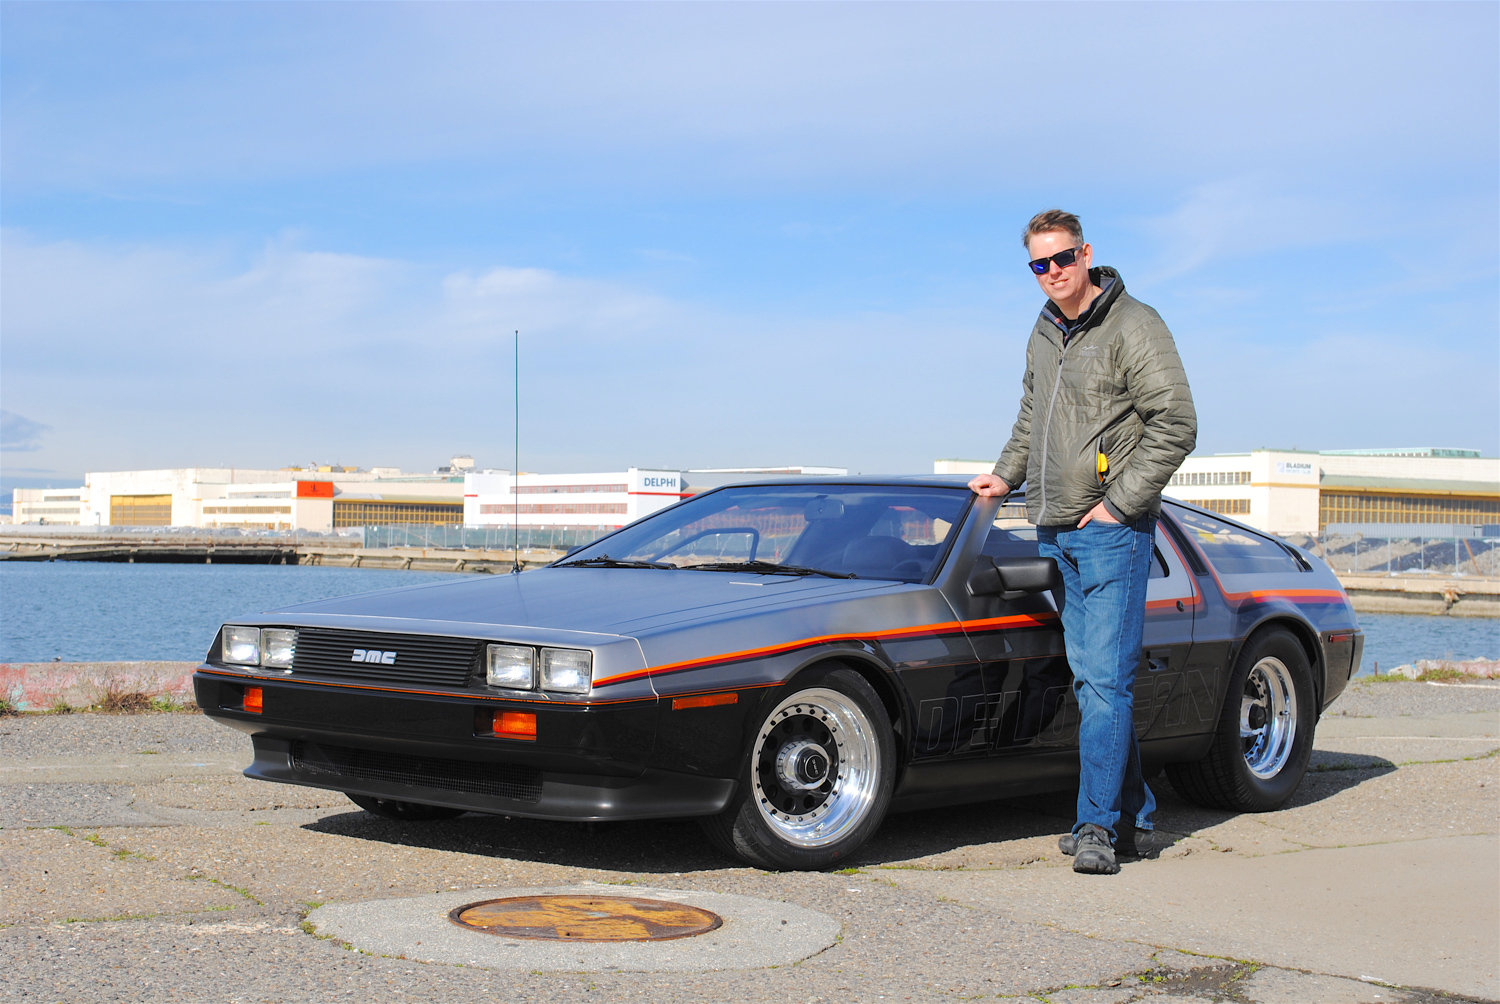 1981 DeLorean DMC-12 3/4 front with owner